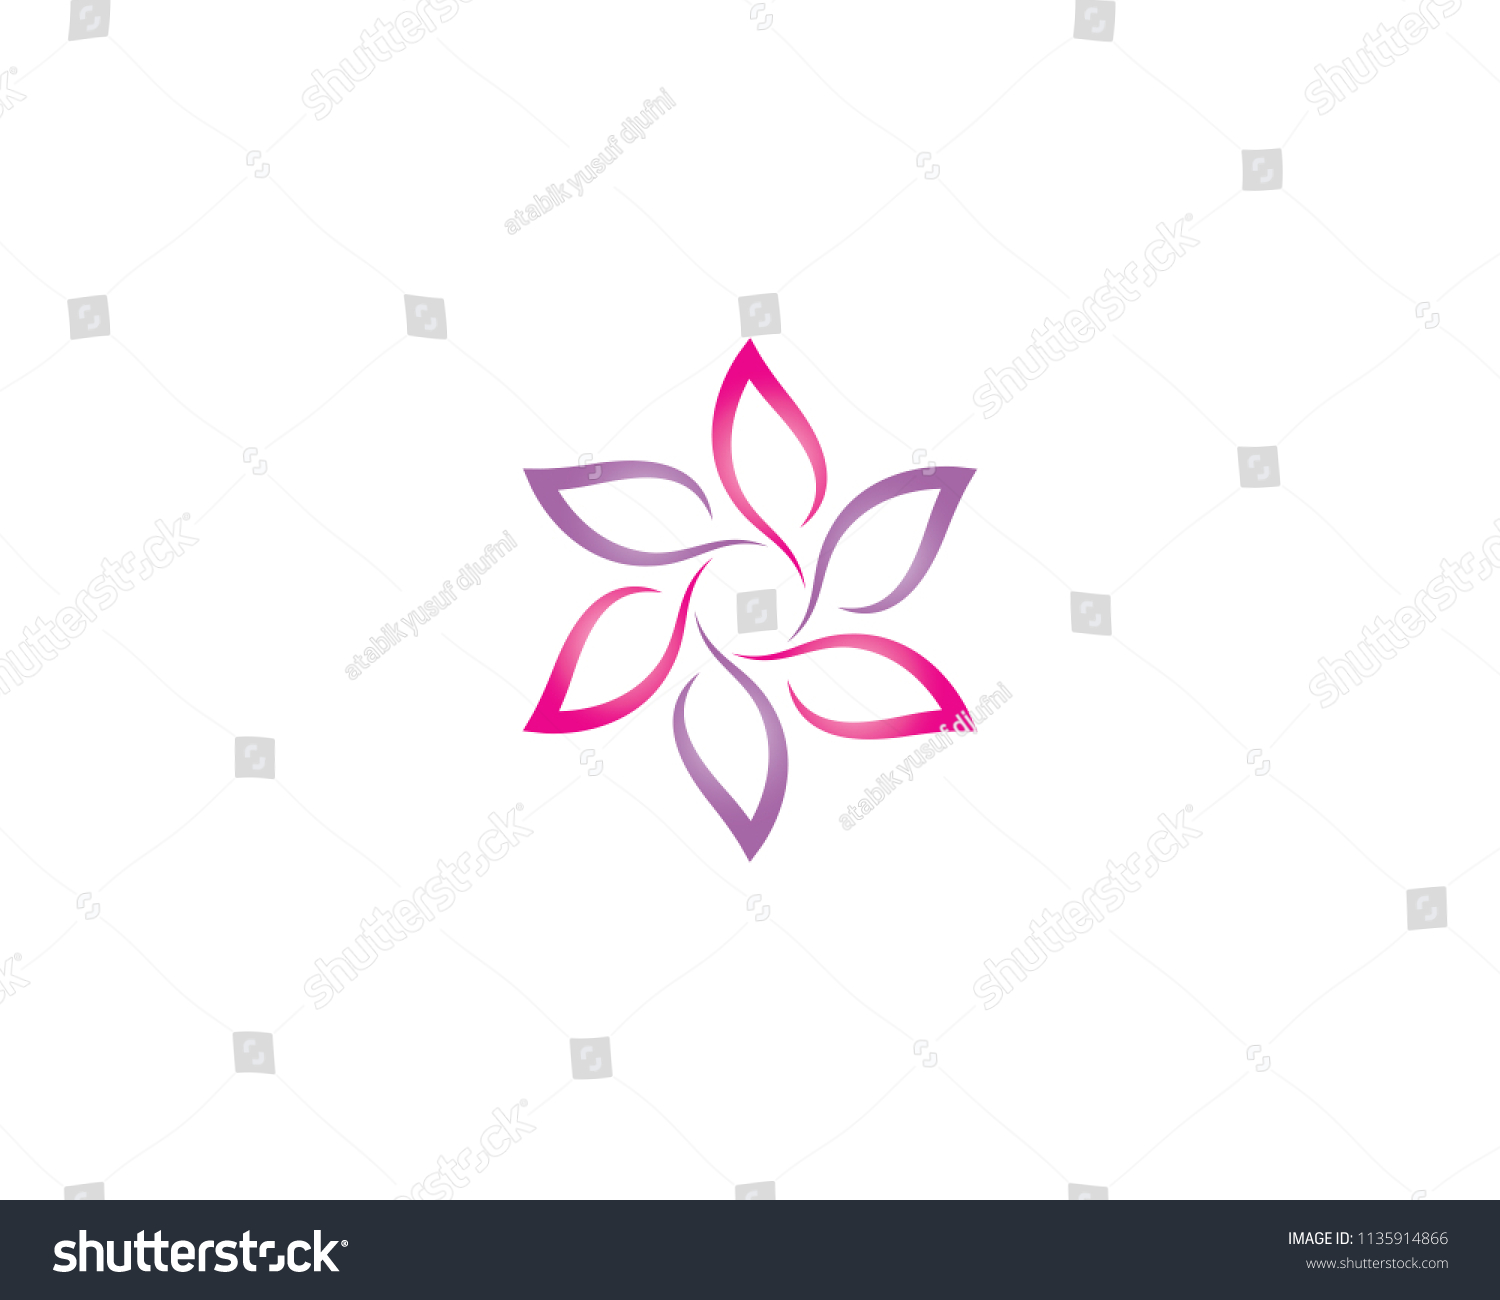 Beauty flower symbol illustration stock vector royalty free beauty flower symbol illustration izmirmasajfo